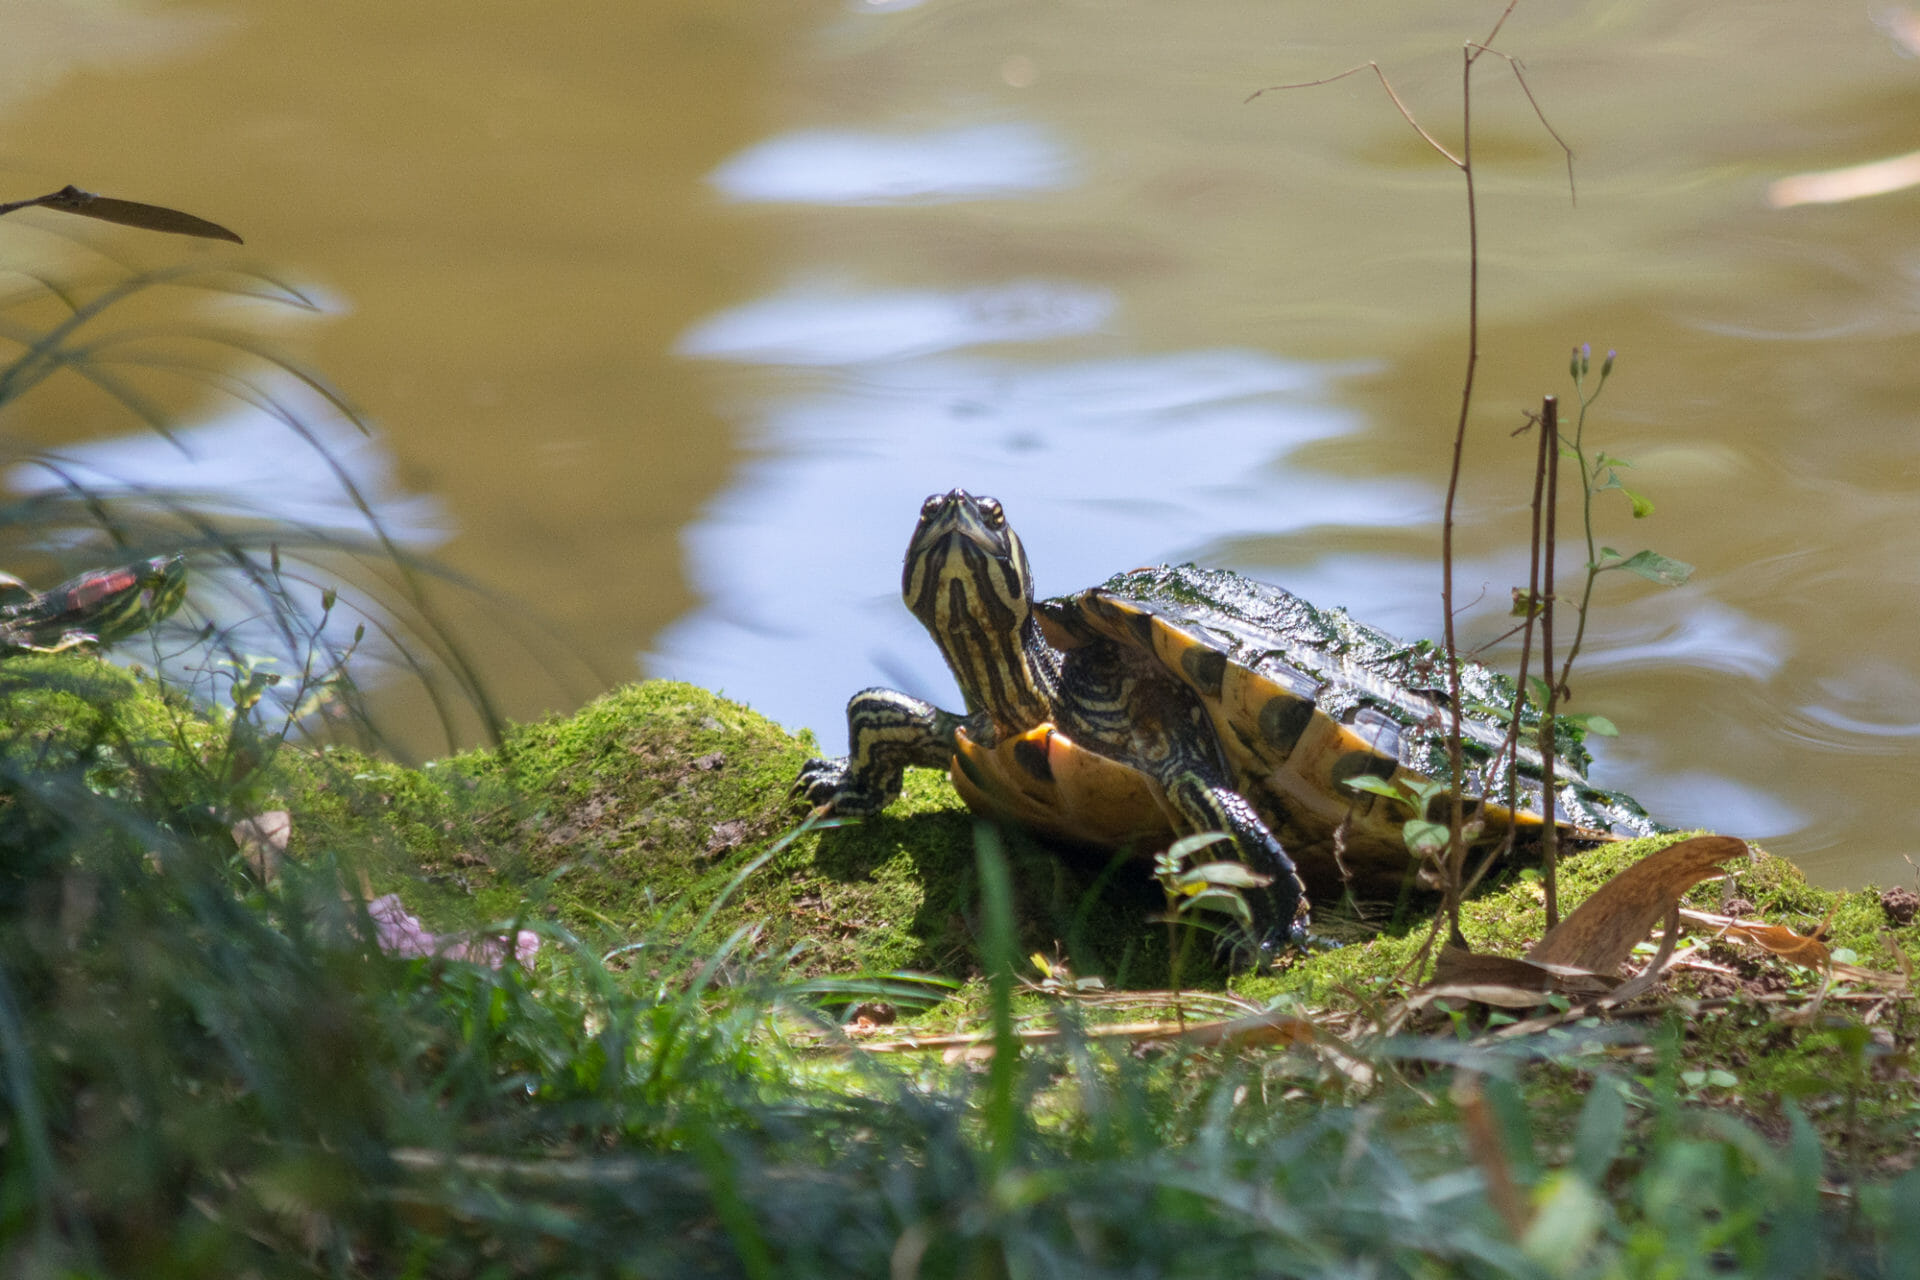 Turtle friend eying the camera